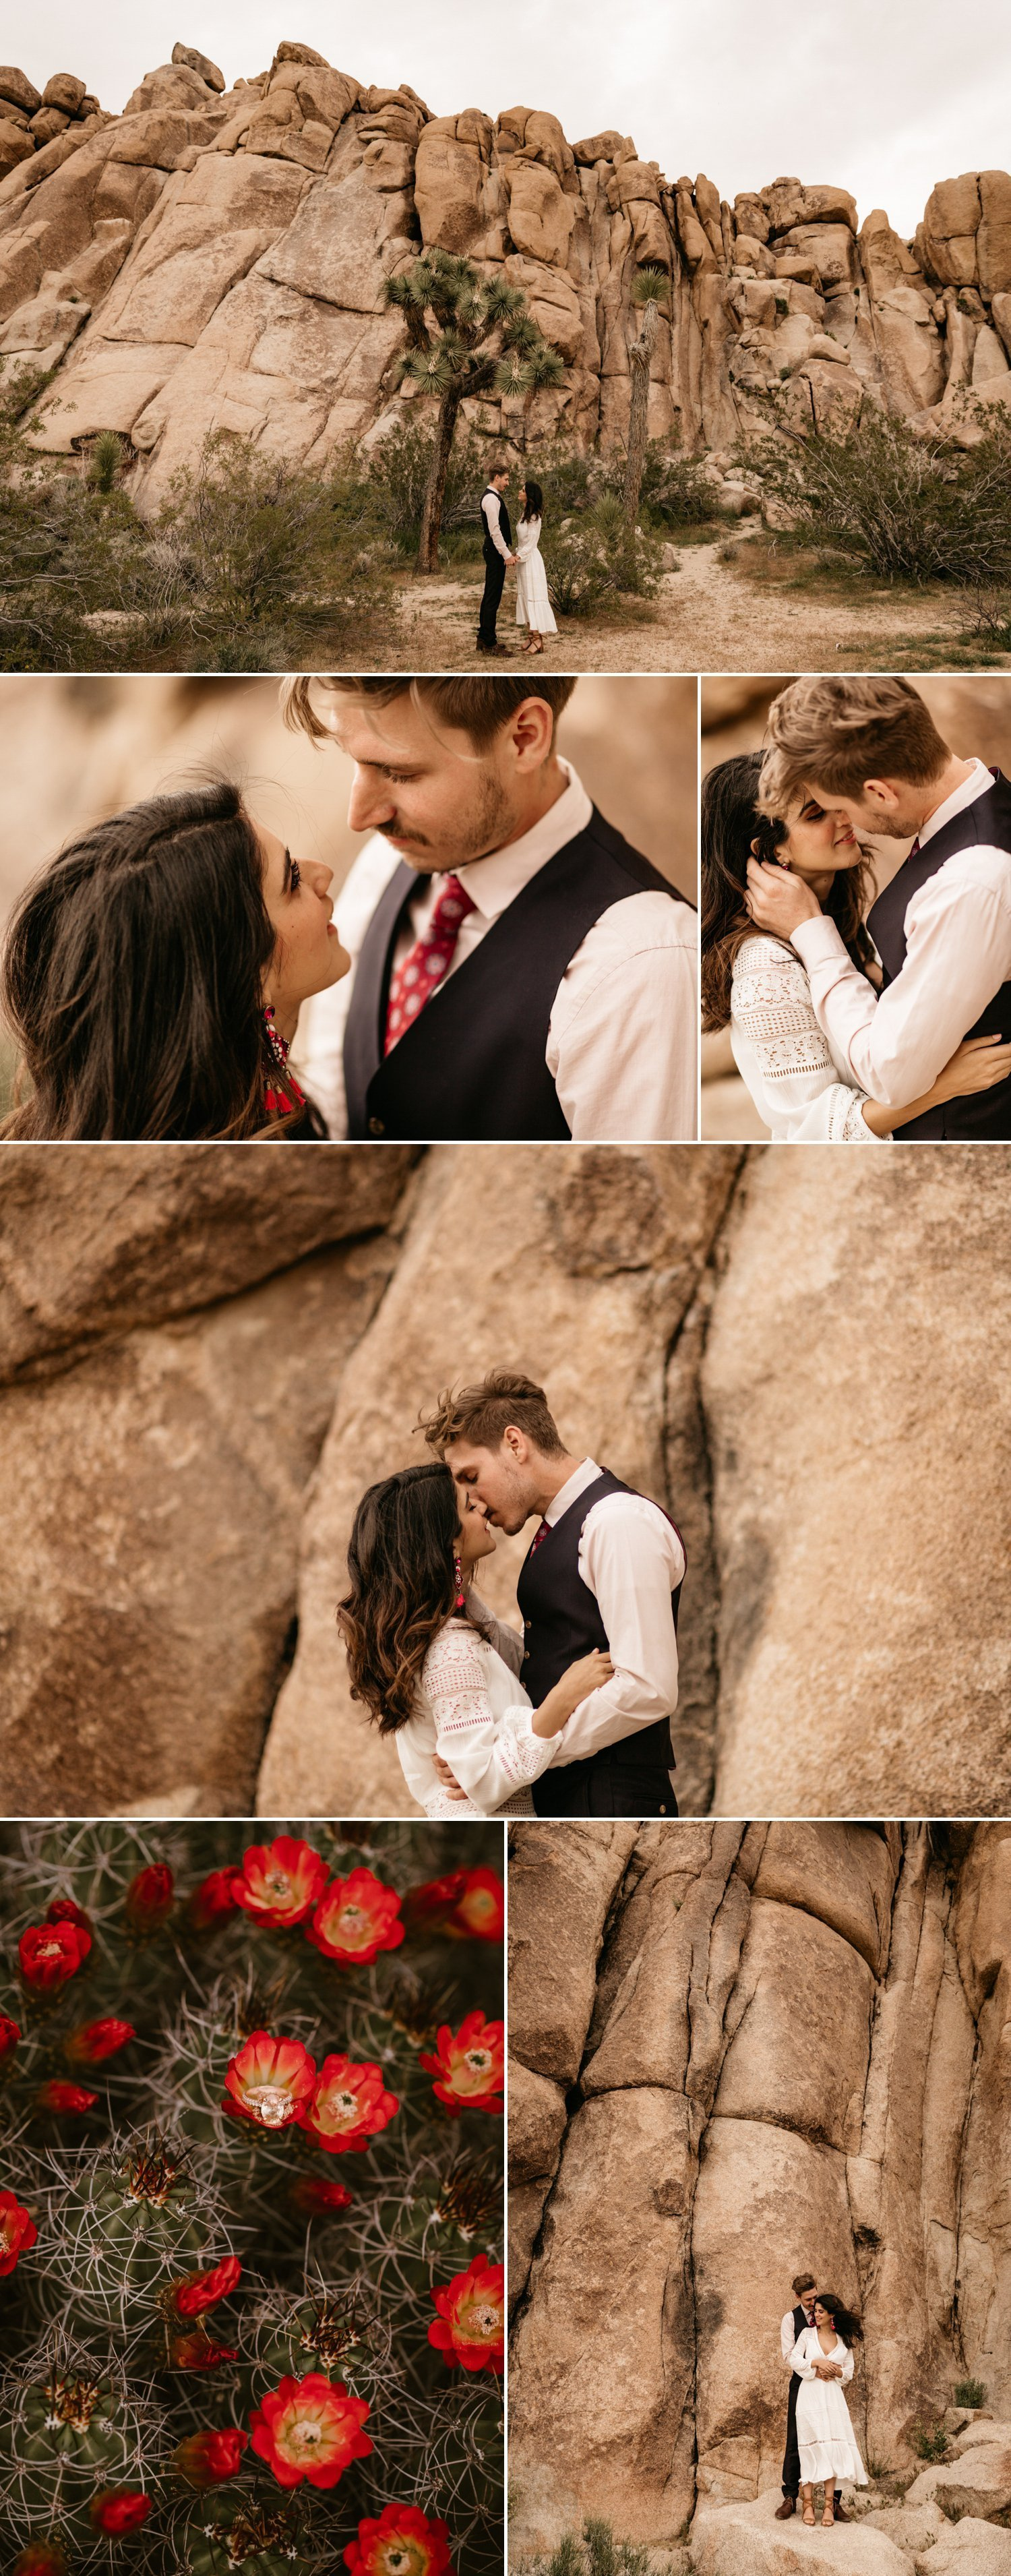 Desert engagement in Joshua Tree